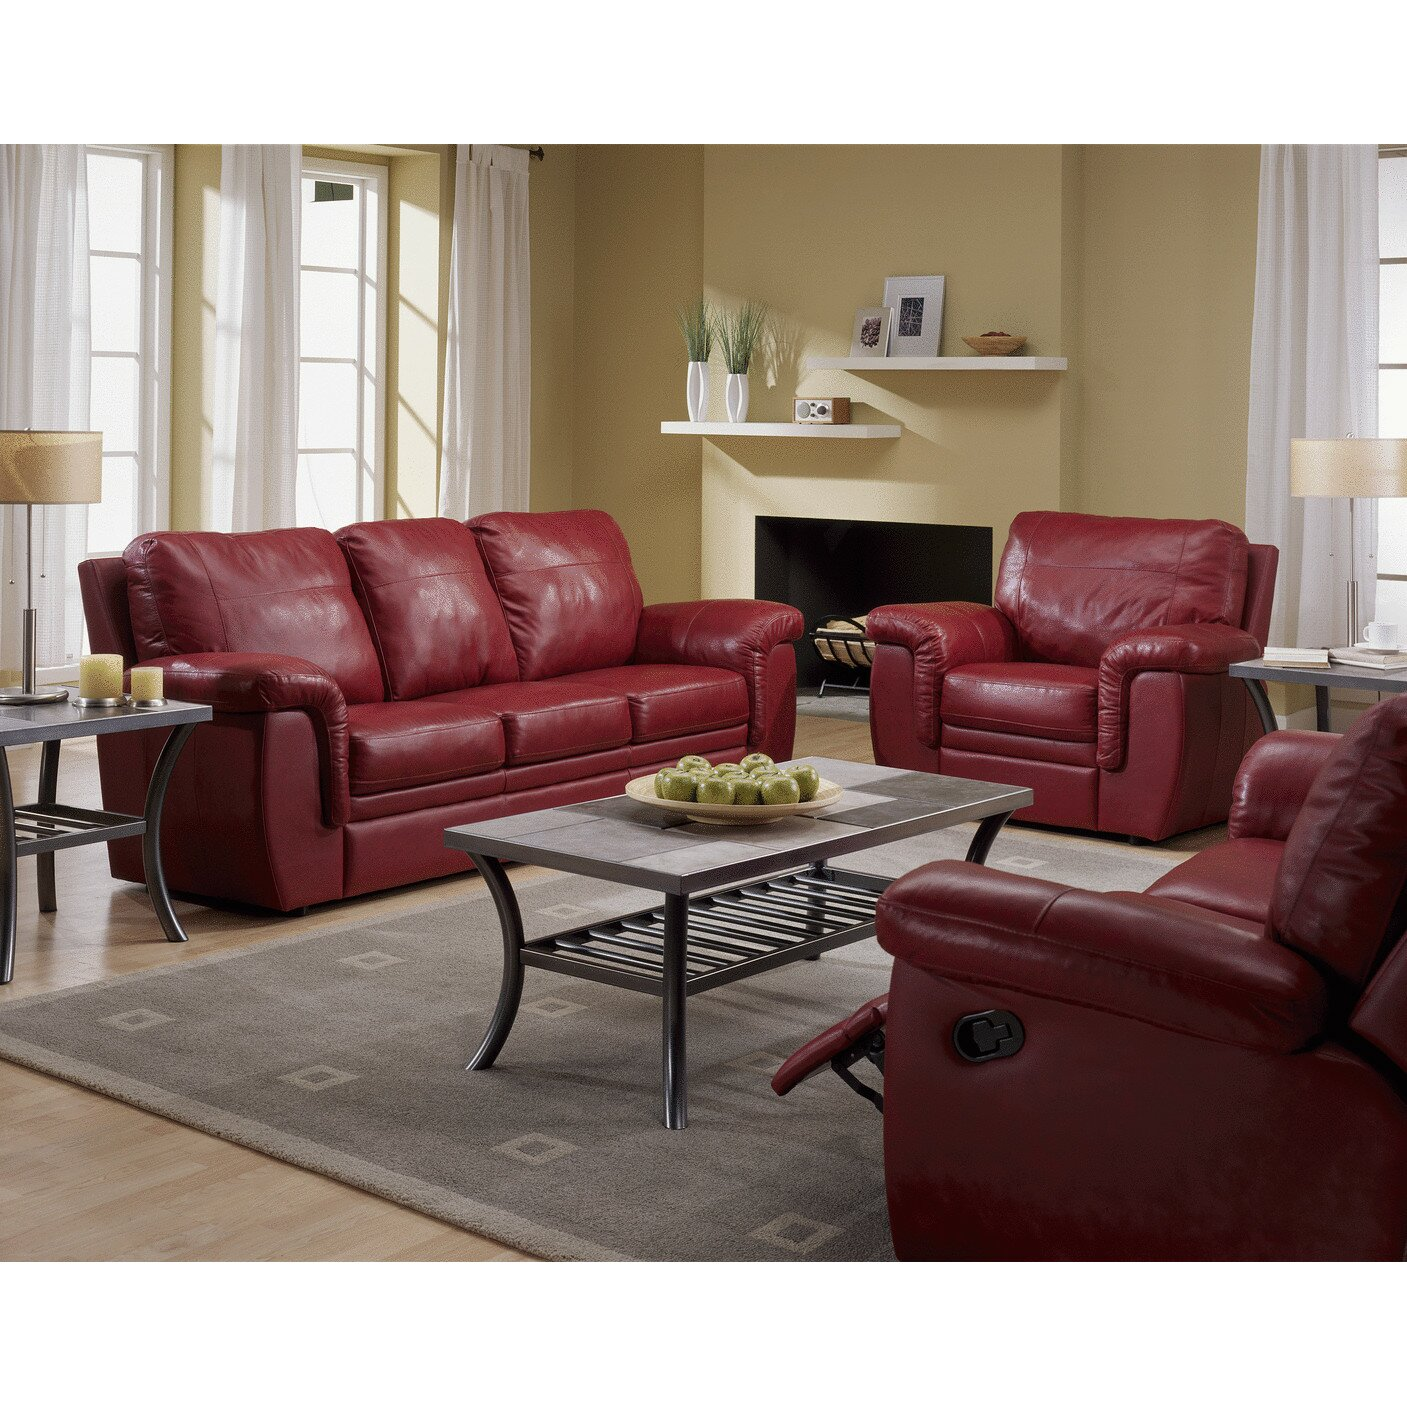 Palliser Miami Sectional From 1 968 00 By Palliser: Brunswick Living Room Collection